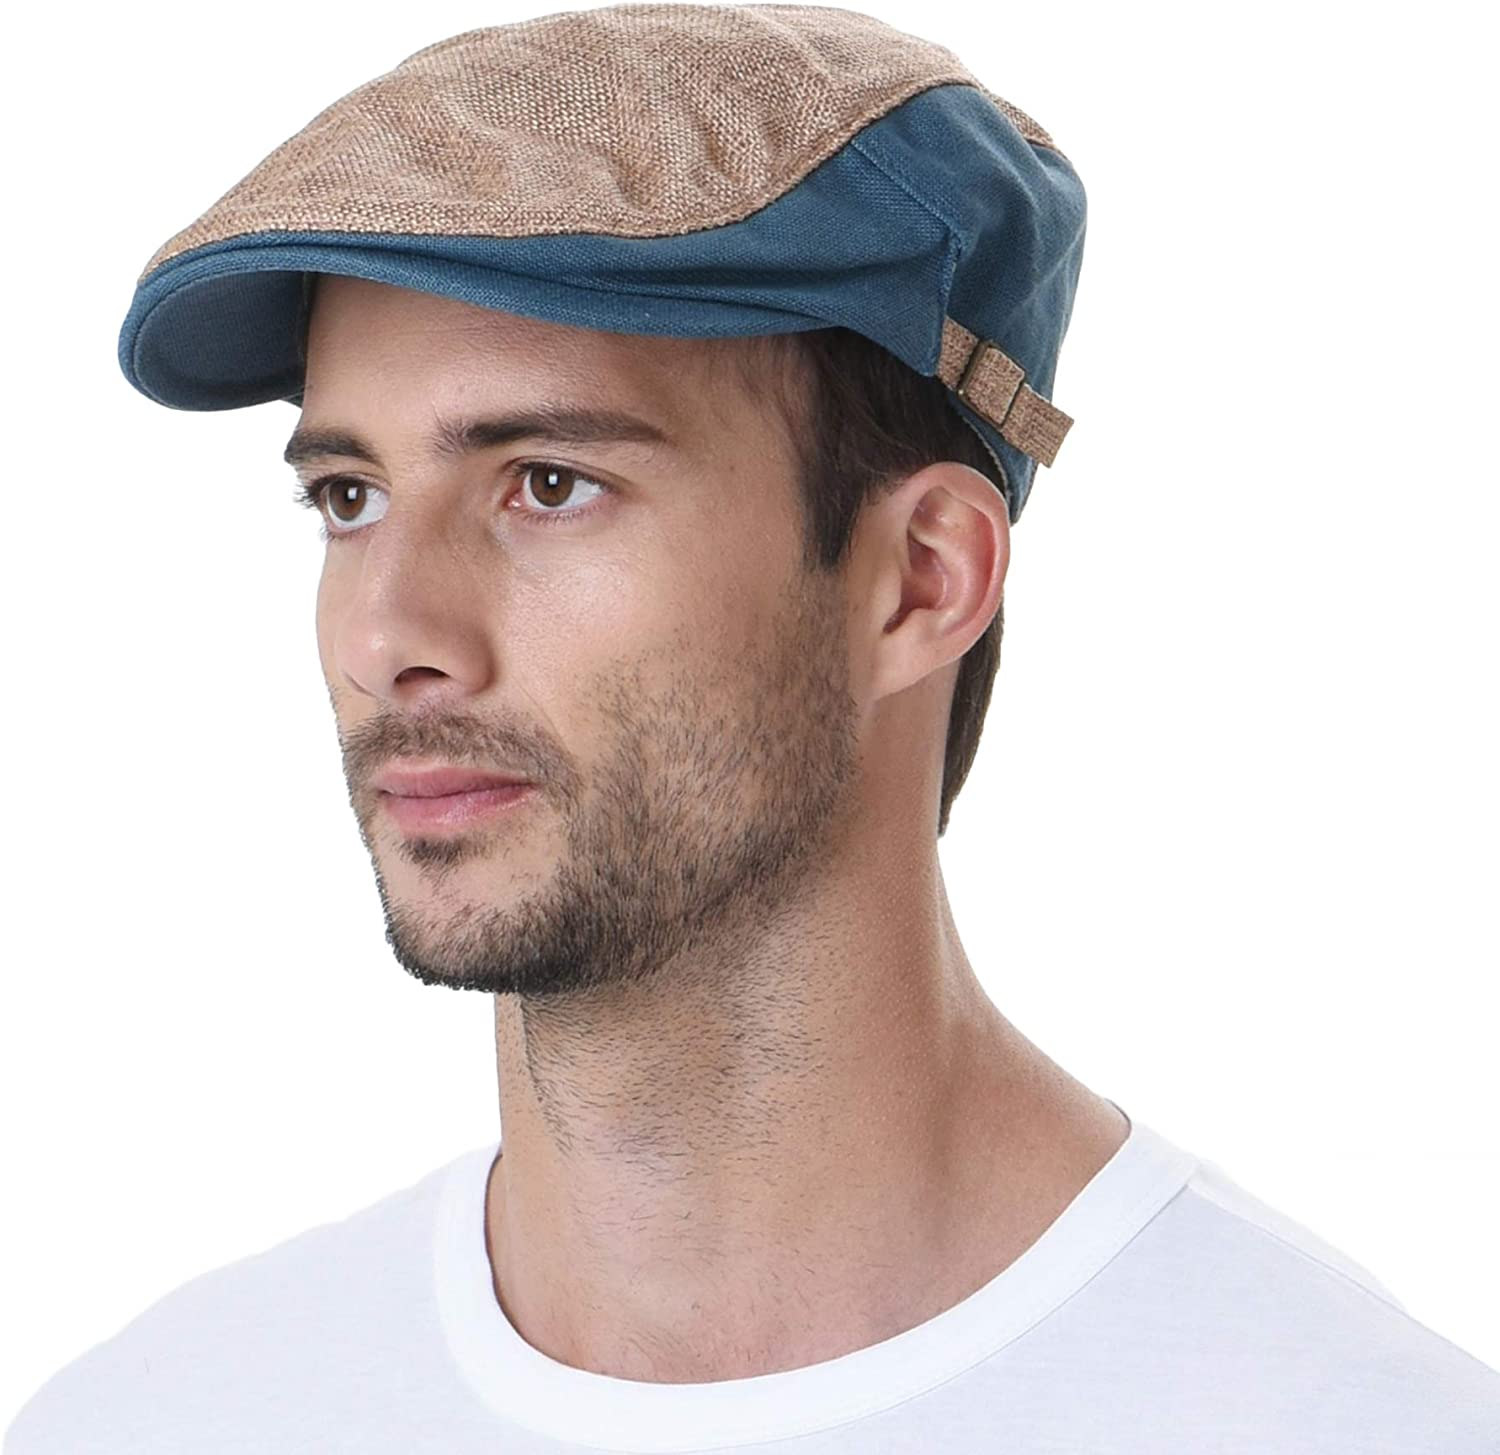 WITHMOONS Two Tone Chicago Portland Mall Mall Block Summer Hat Cap Newsboy Flat AC3046